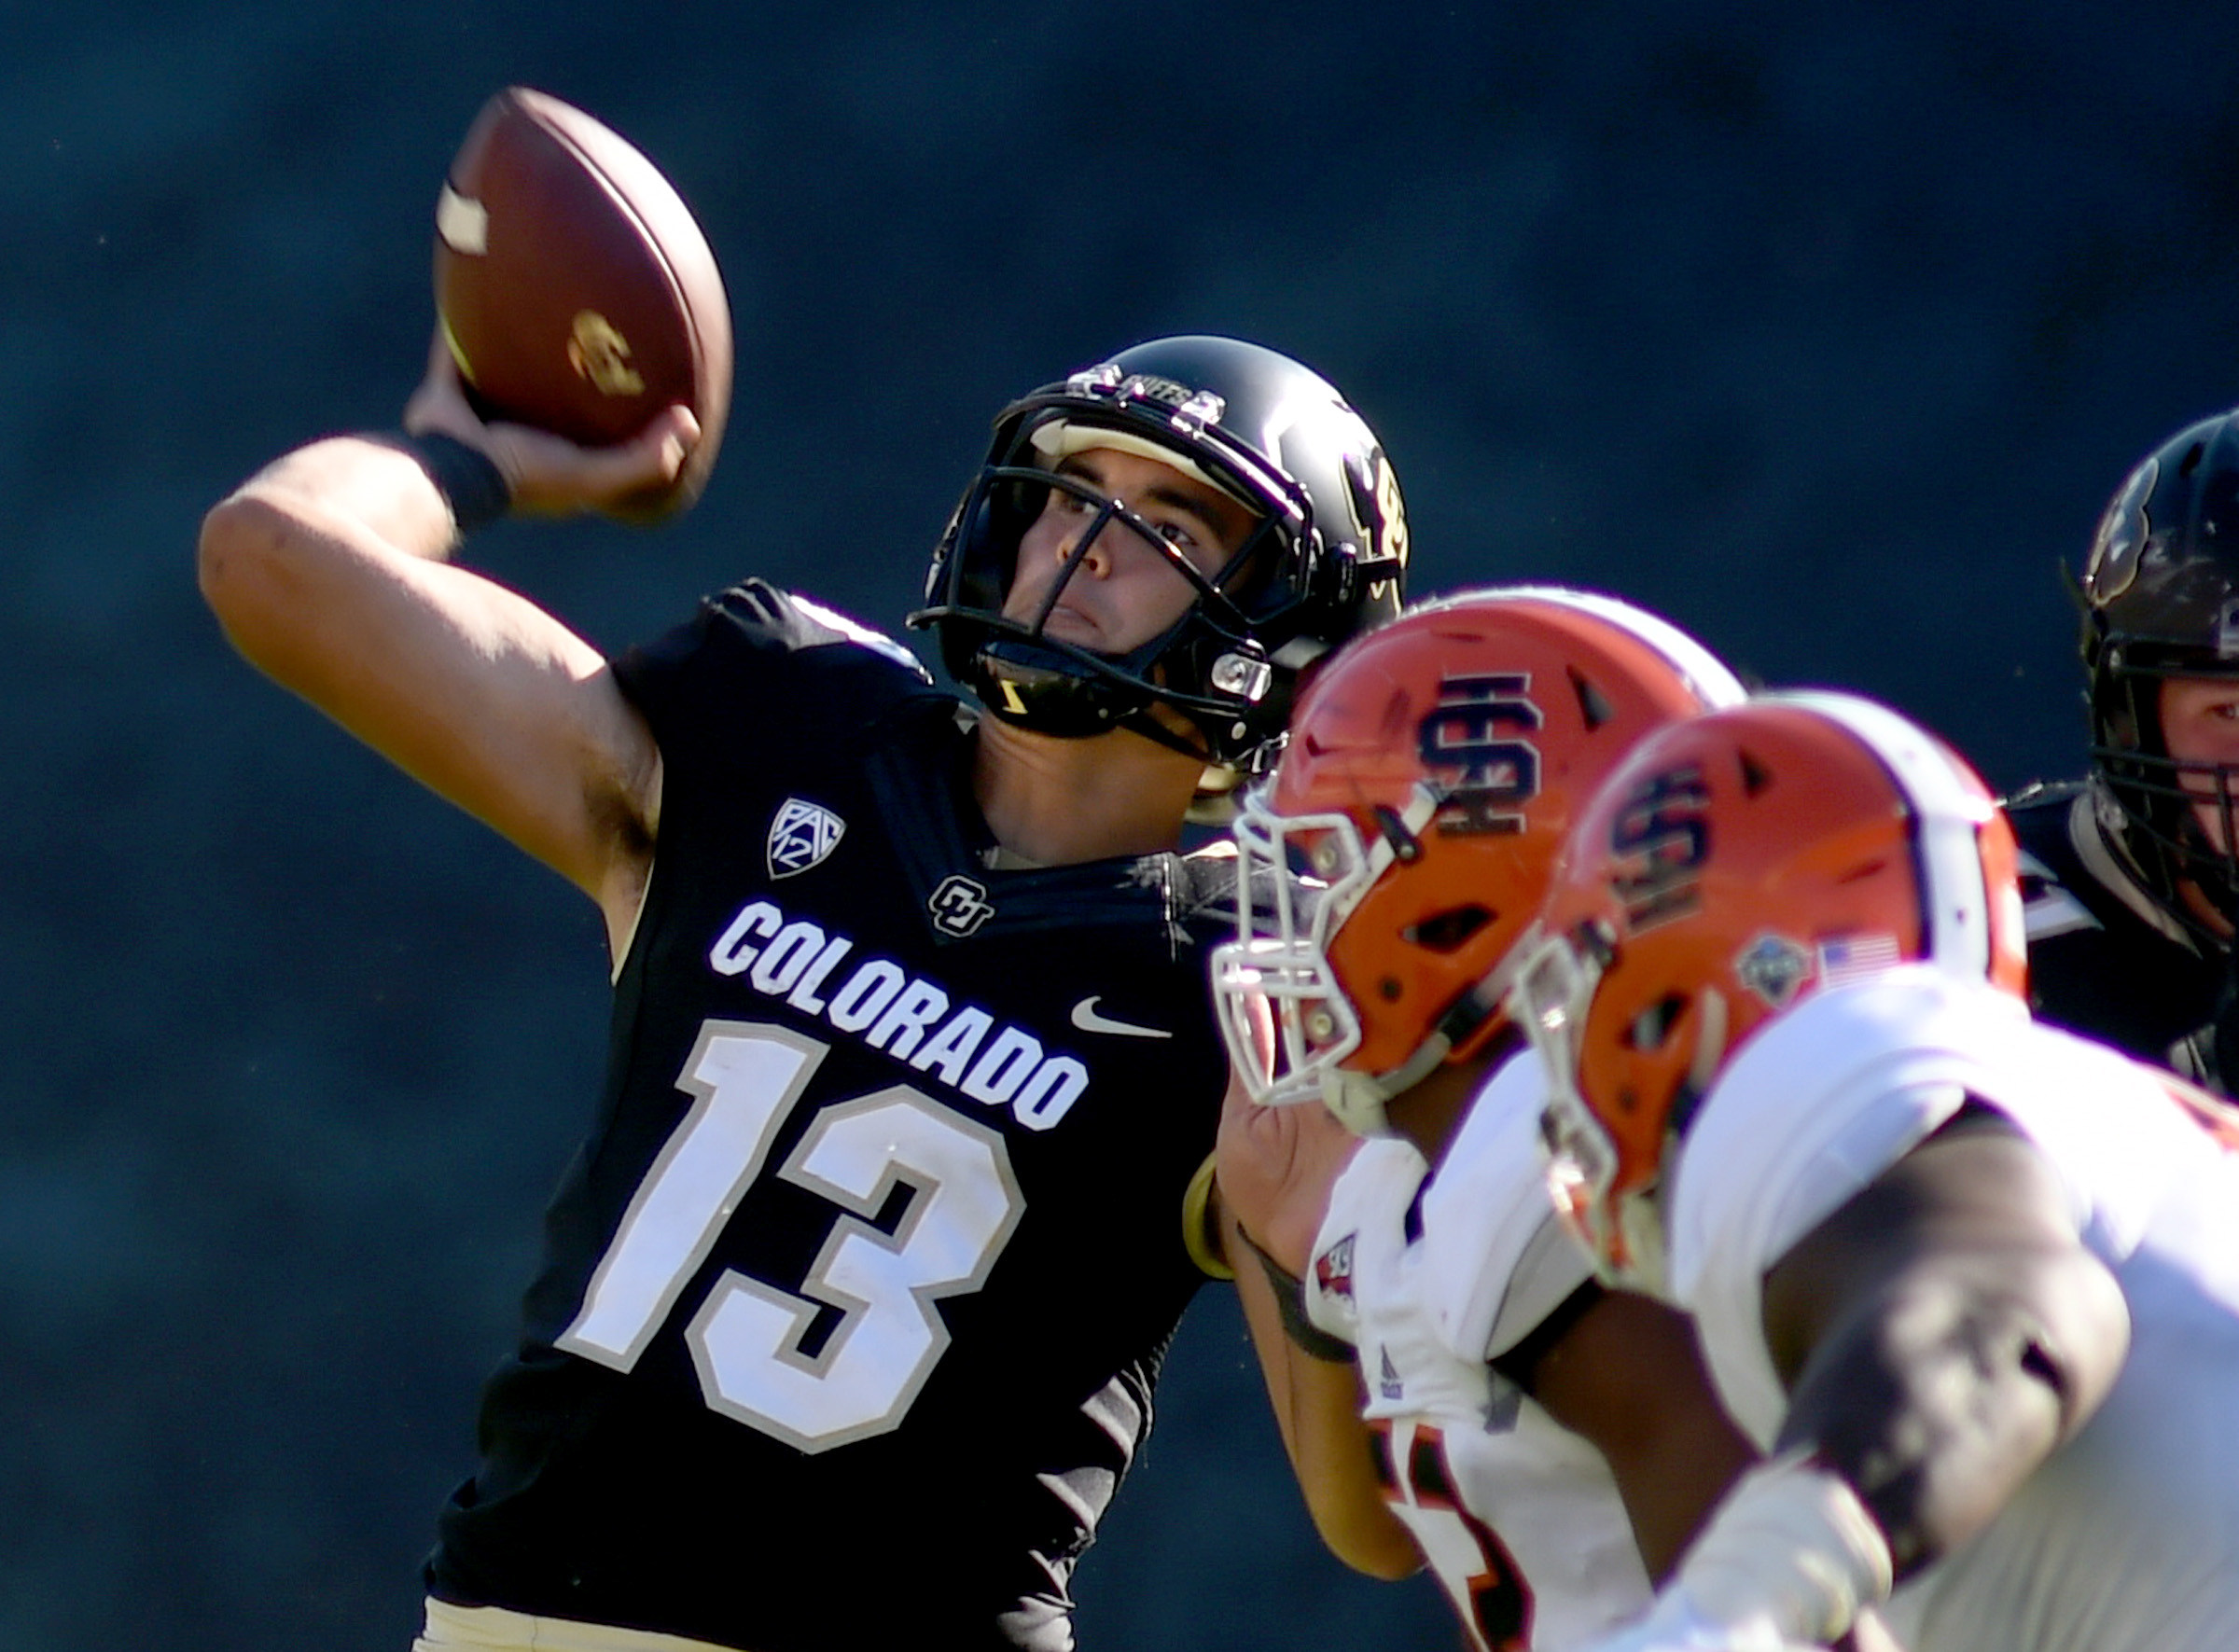 Colorado quarterback, Sefo Liufau, throws down field during the first half of an NCAA college football game against Idaho State, Saturday, Sept. 10, 2016 in Boulder, Colo. (Cliff Grassmick/The Daily Camera via AP)